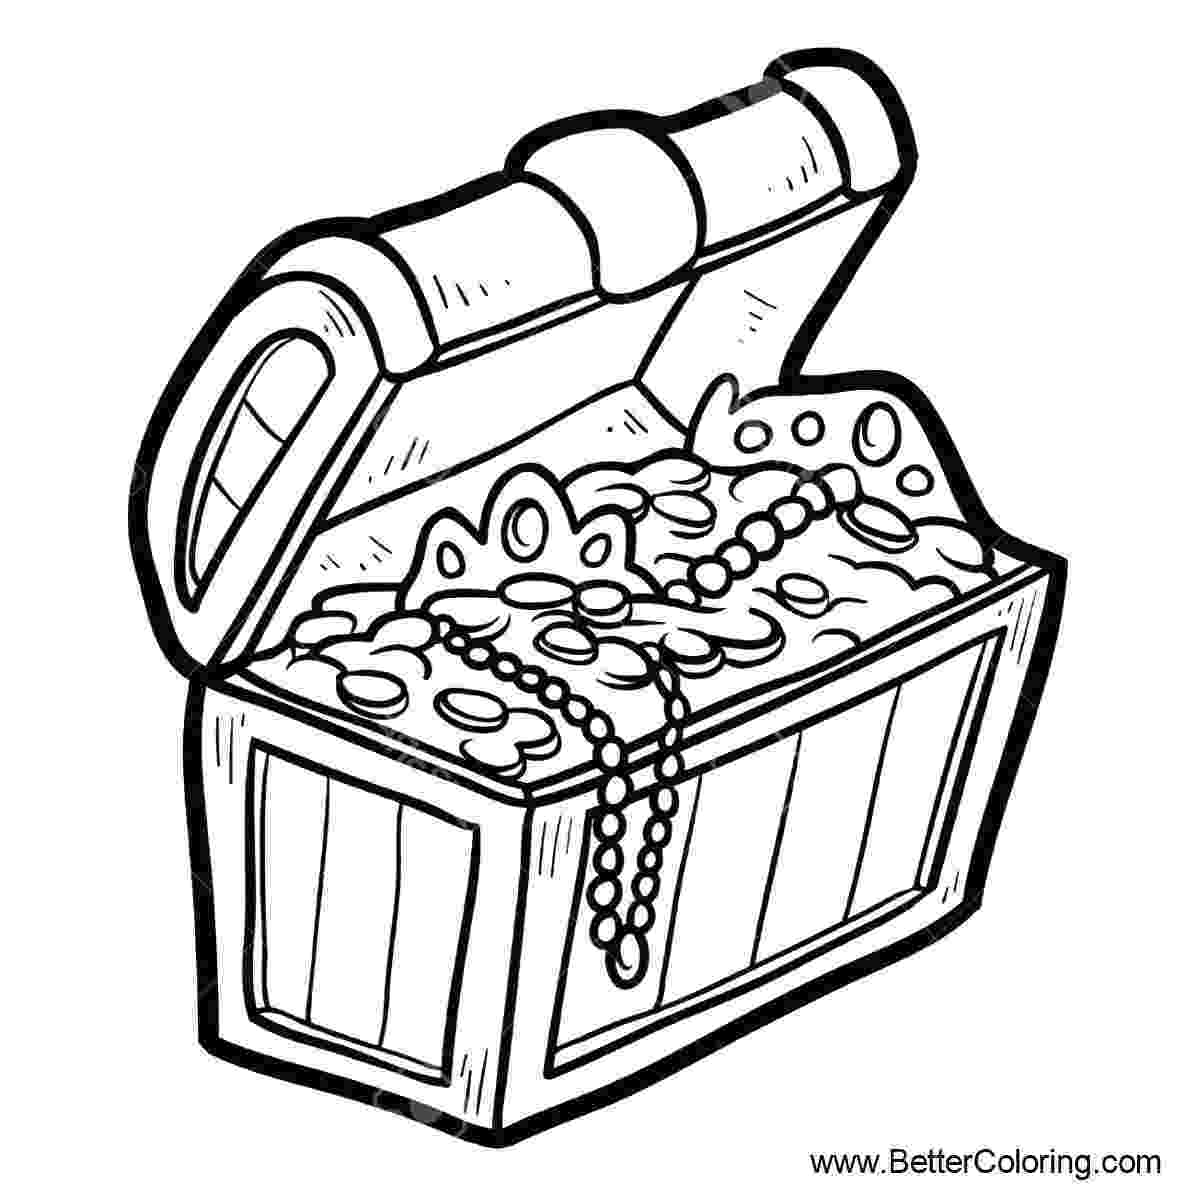 treasure chest coloring pages printable open treasure chest coloring page coloring home coloring pages treasure printable chest